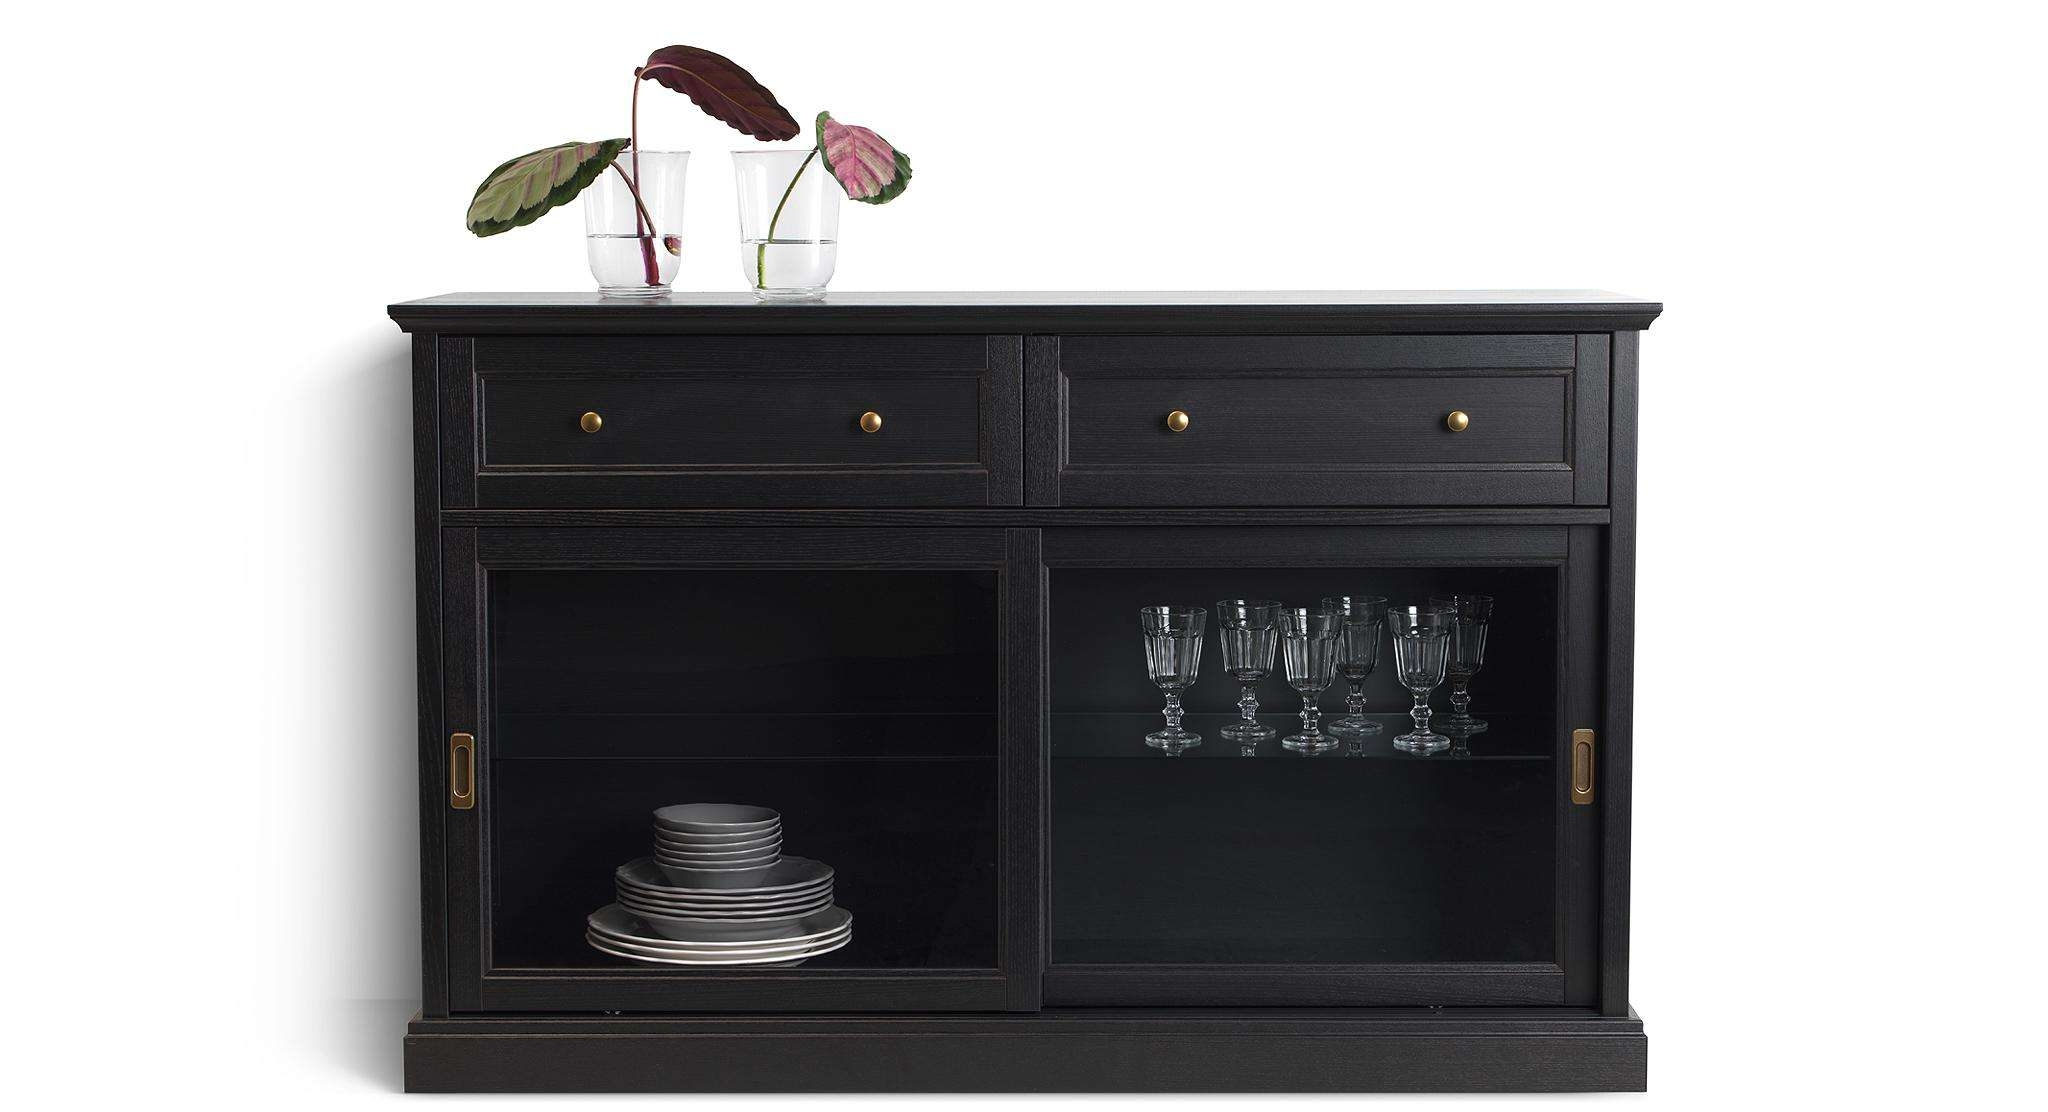 Storage Cabinets & Storage Cupboards | Ikea Ireland Intended For Sideboards With Glass Doors And Drawers (View 9 of 20)